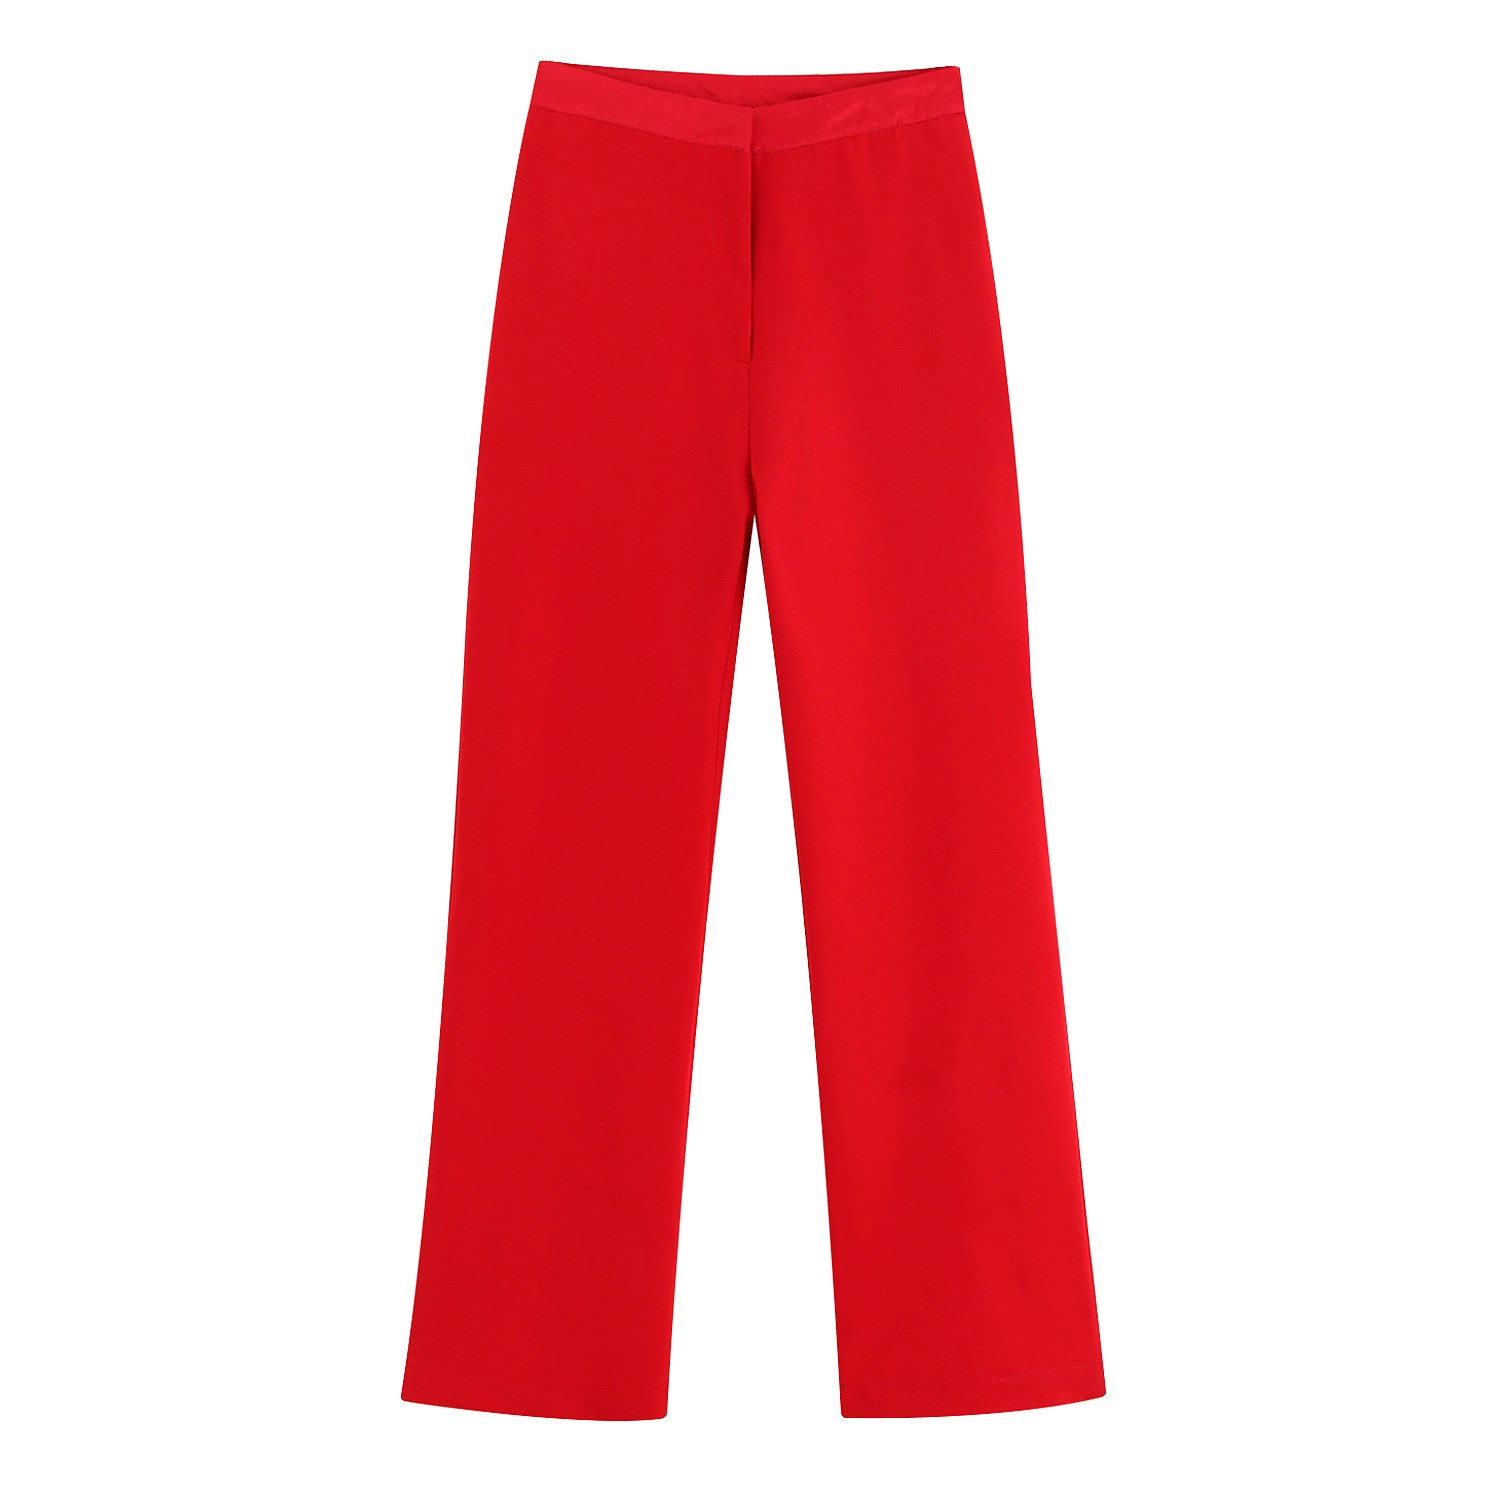 Women Red High Waist Ankle-Length   Pants   Elegant Loose Zipper   Wide     Leg     Pants   Office Casual Trousers